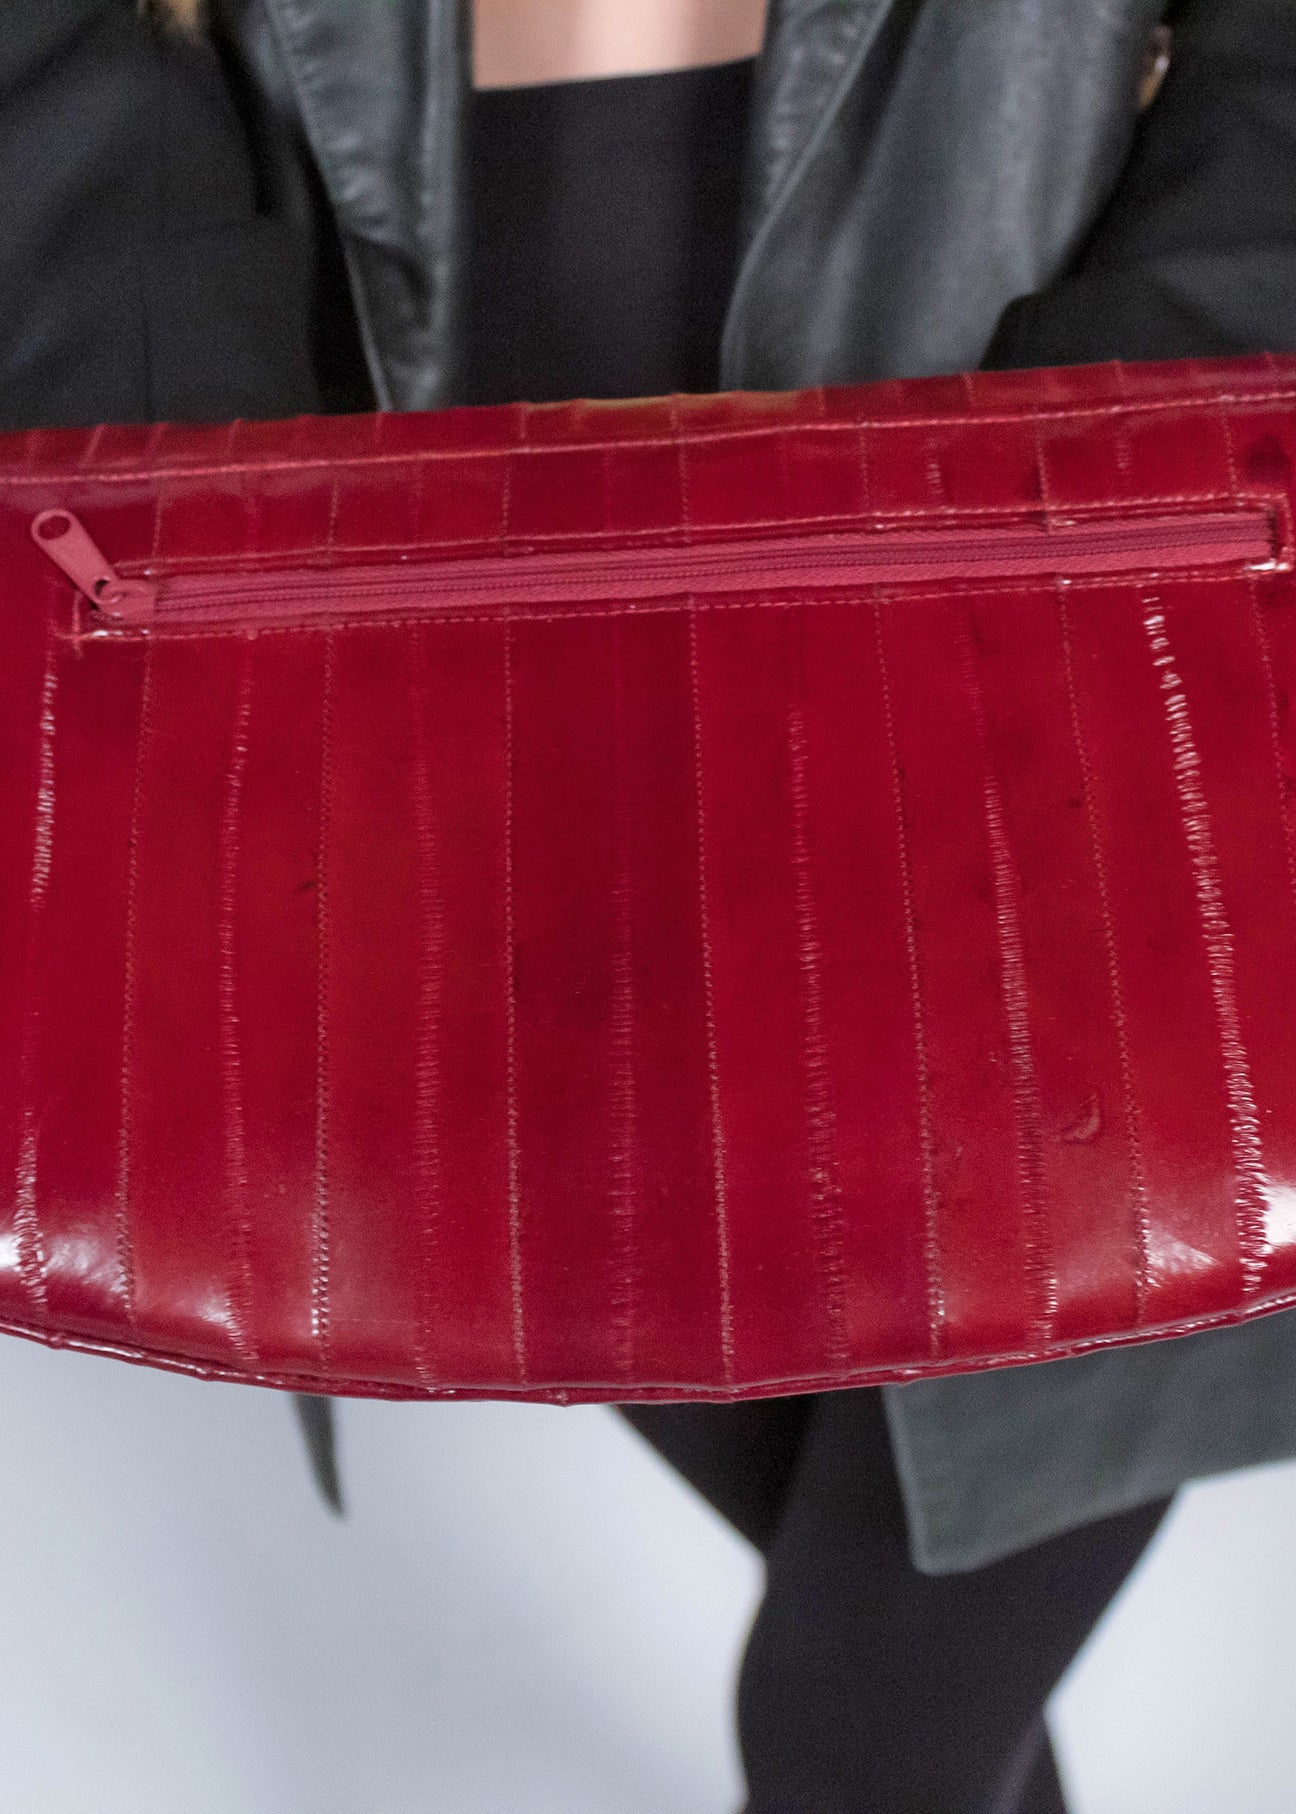 70s Leather Eel Clutch